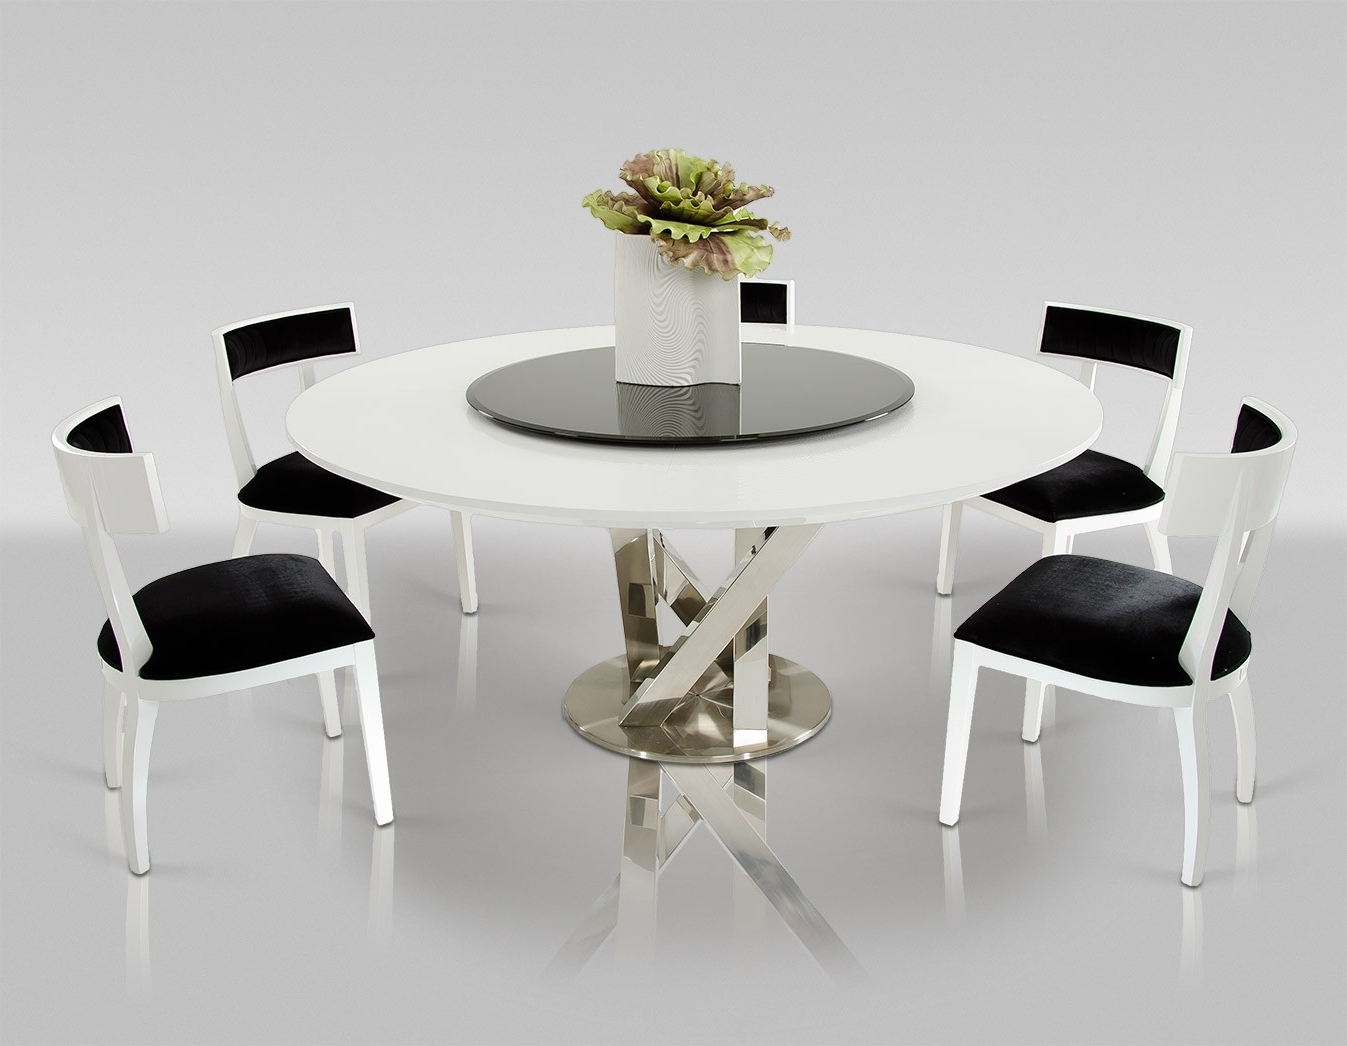 useful tips on the size of modern dining table   la furniture blog with modern round dining table for 8 At Detroit - Kitchen Furniture and Designs Dream